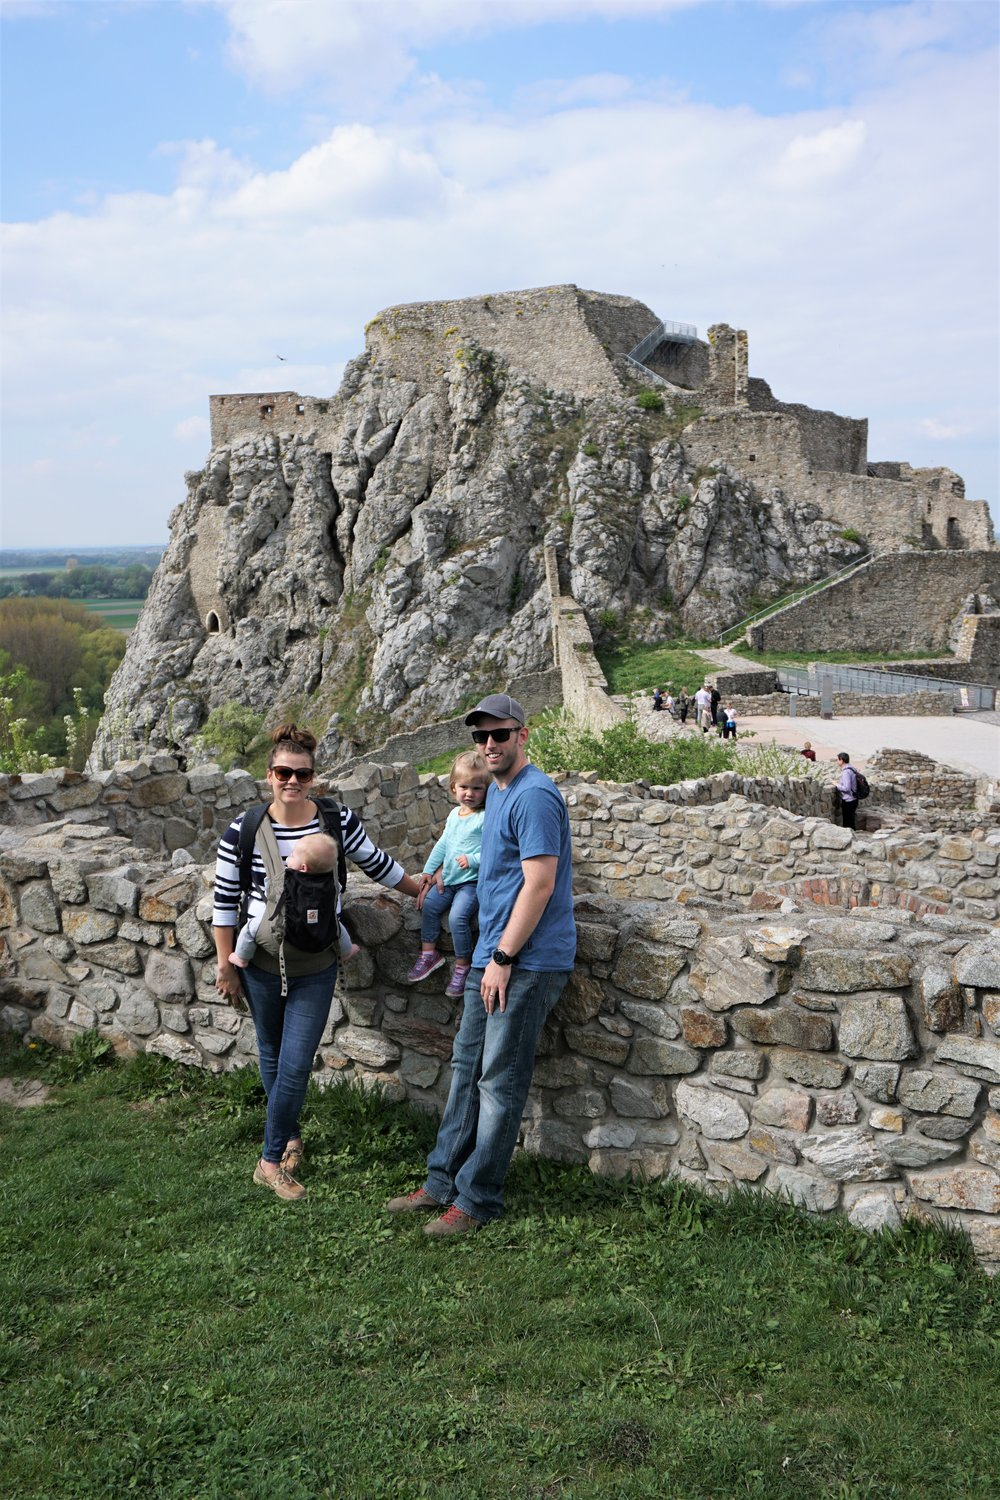 The nomads standing at devin castle